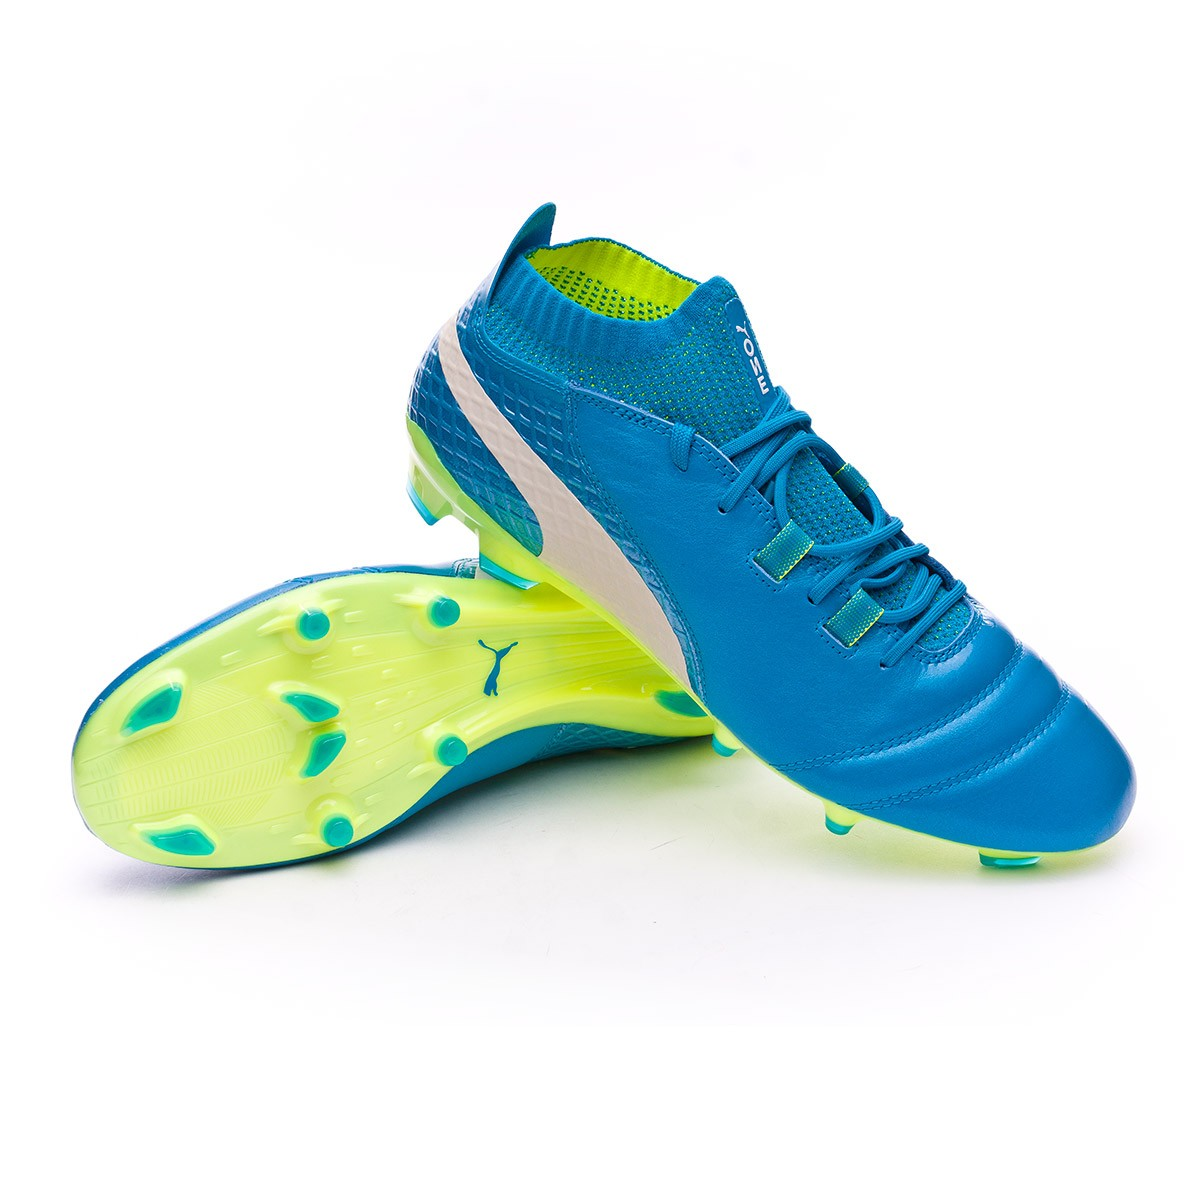 Scarpe Fg Calcio 1 17 Puma One Safety Atomic Blue Yellow White UrUXRwqxZ